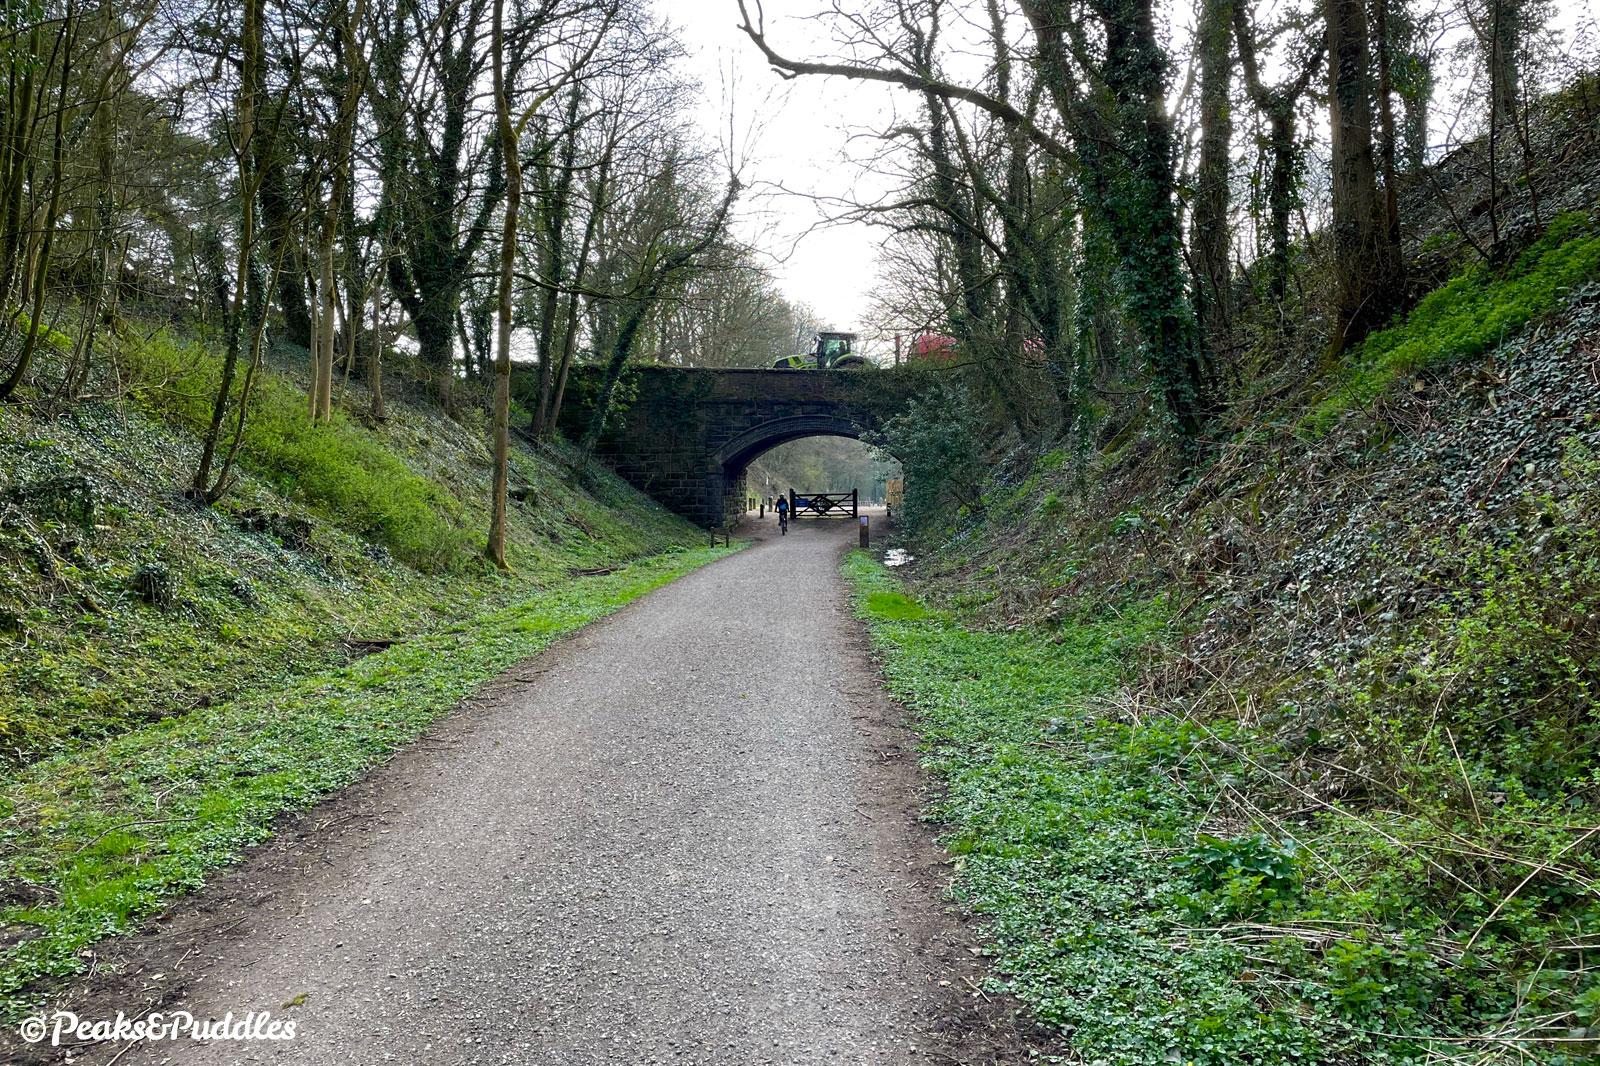 Approaching Tissington station through a damp wooded cutting.